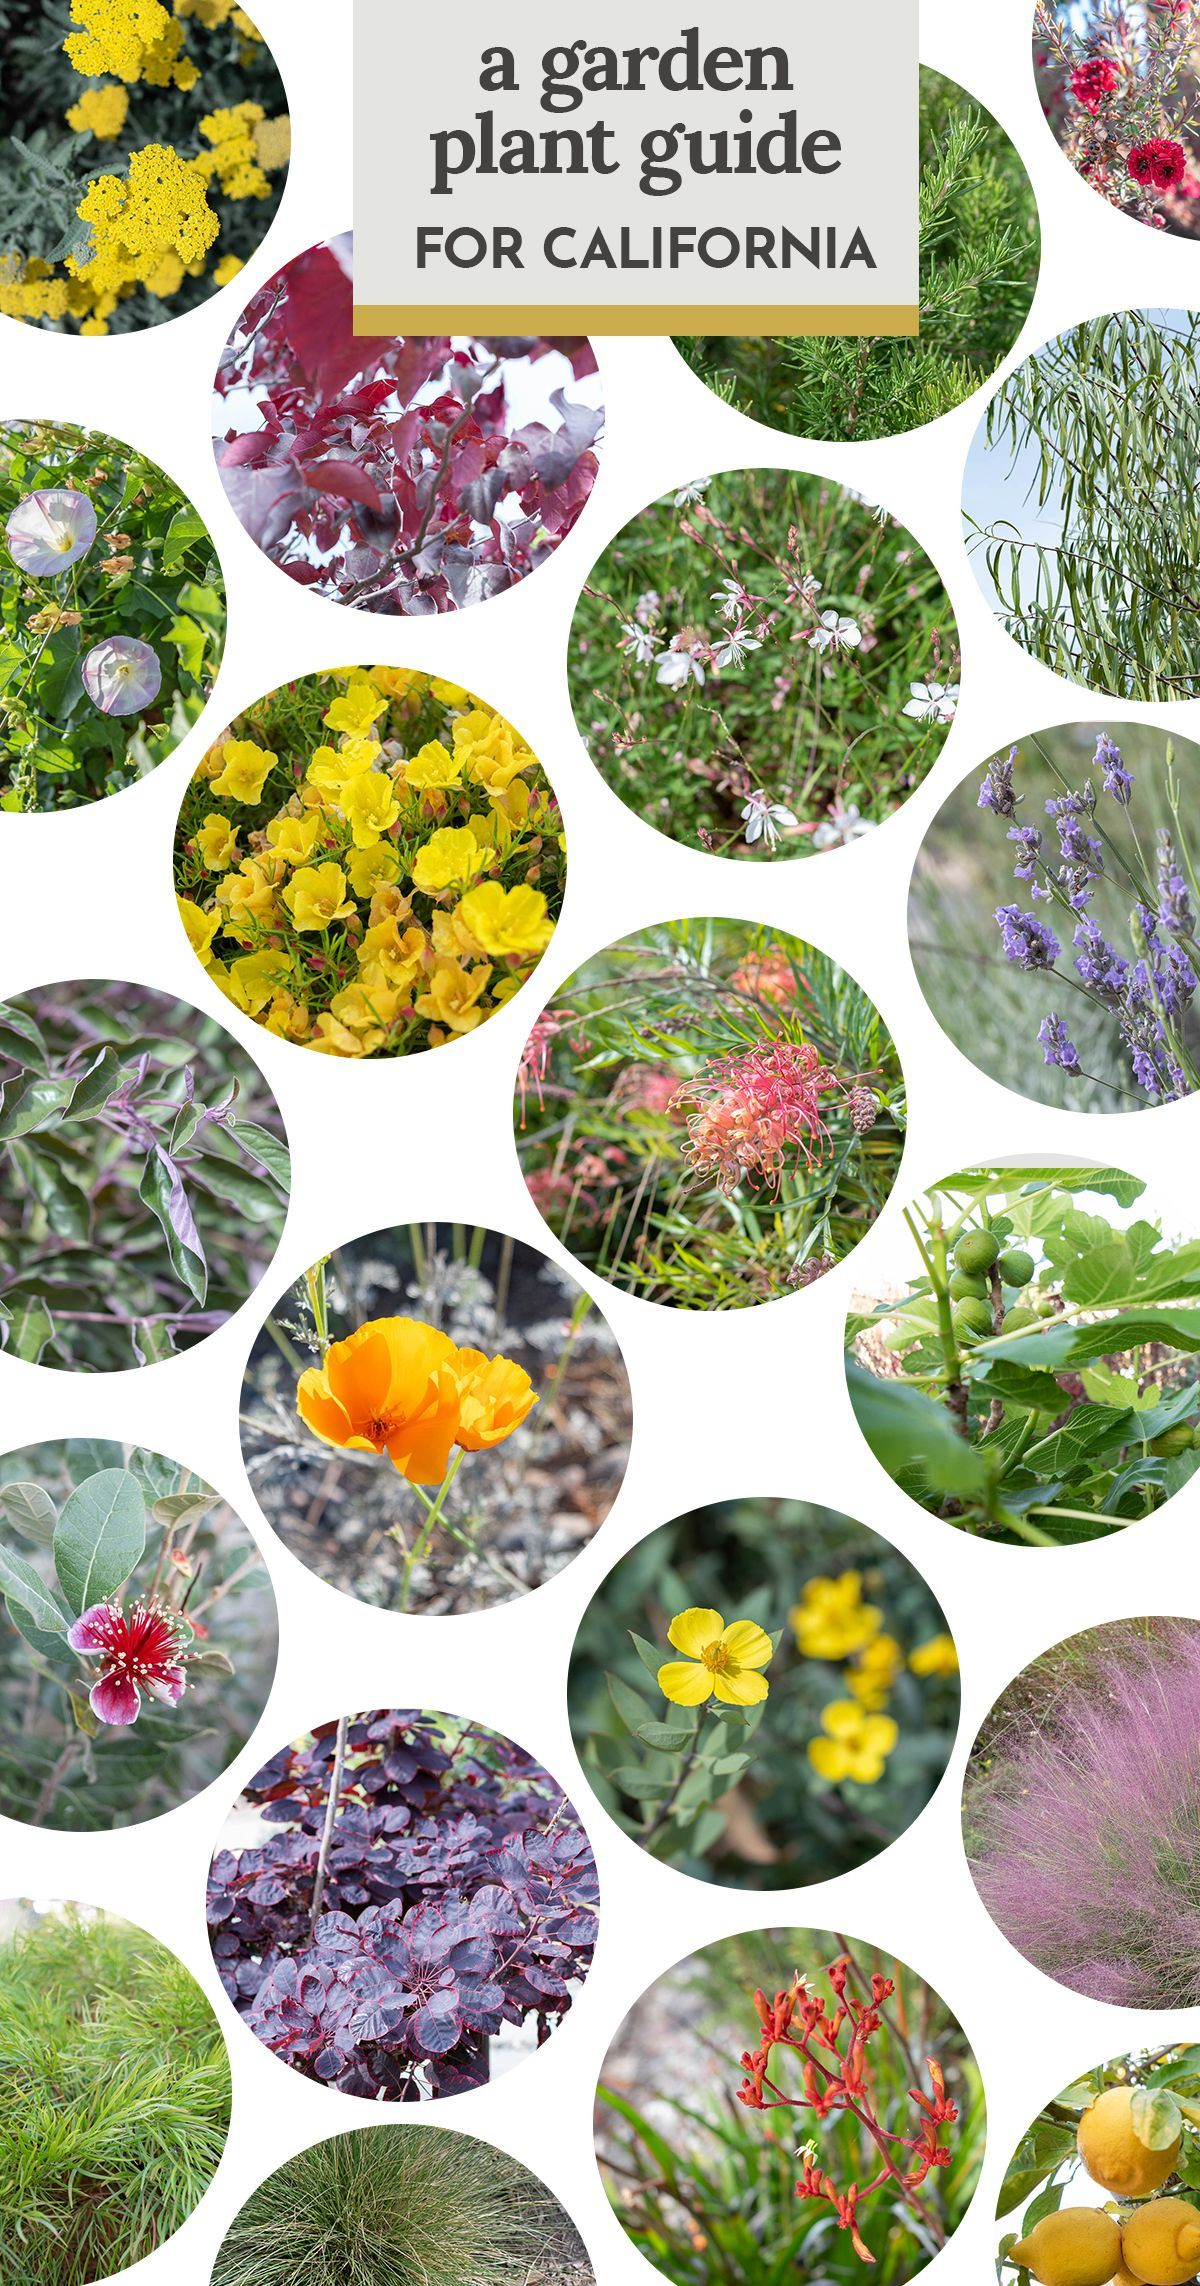 69be8c487196ee0becf77b4e791b1e96 - Care And Maintenance Of Southern California Native Plant Gardens